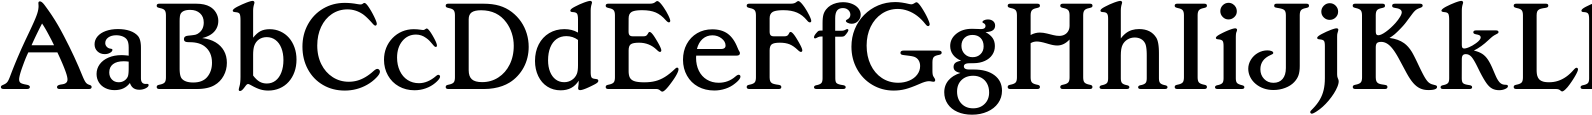 Edwardian Medium LET Font